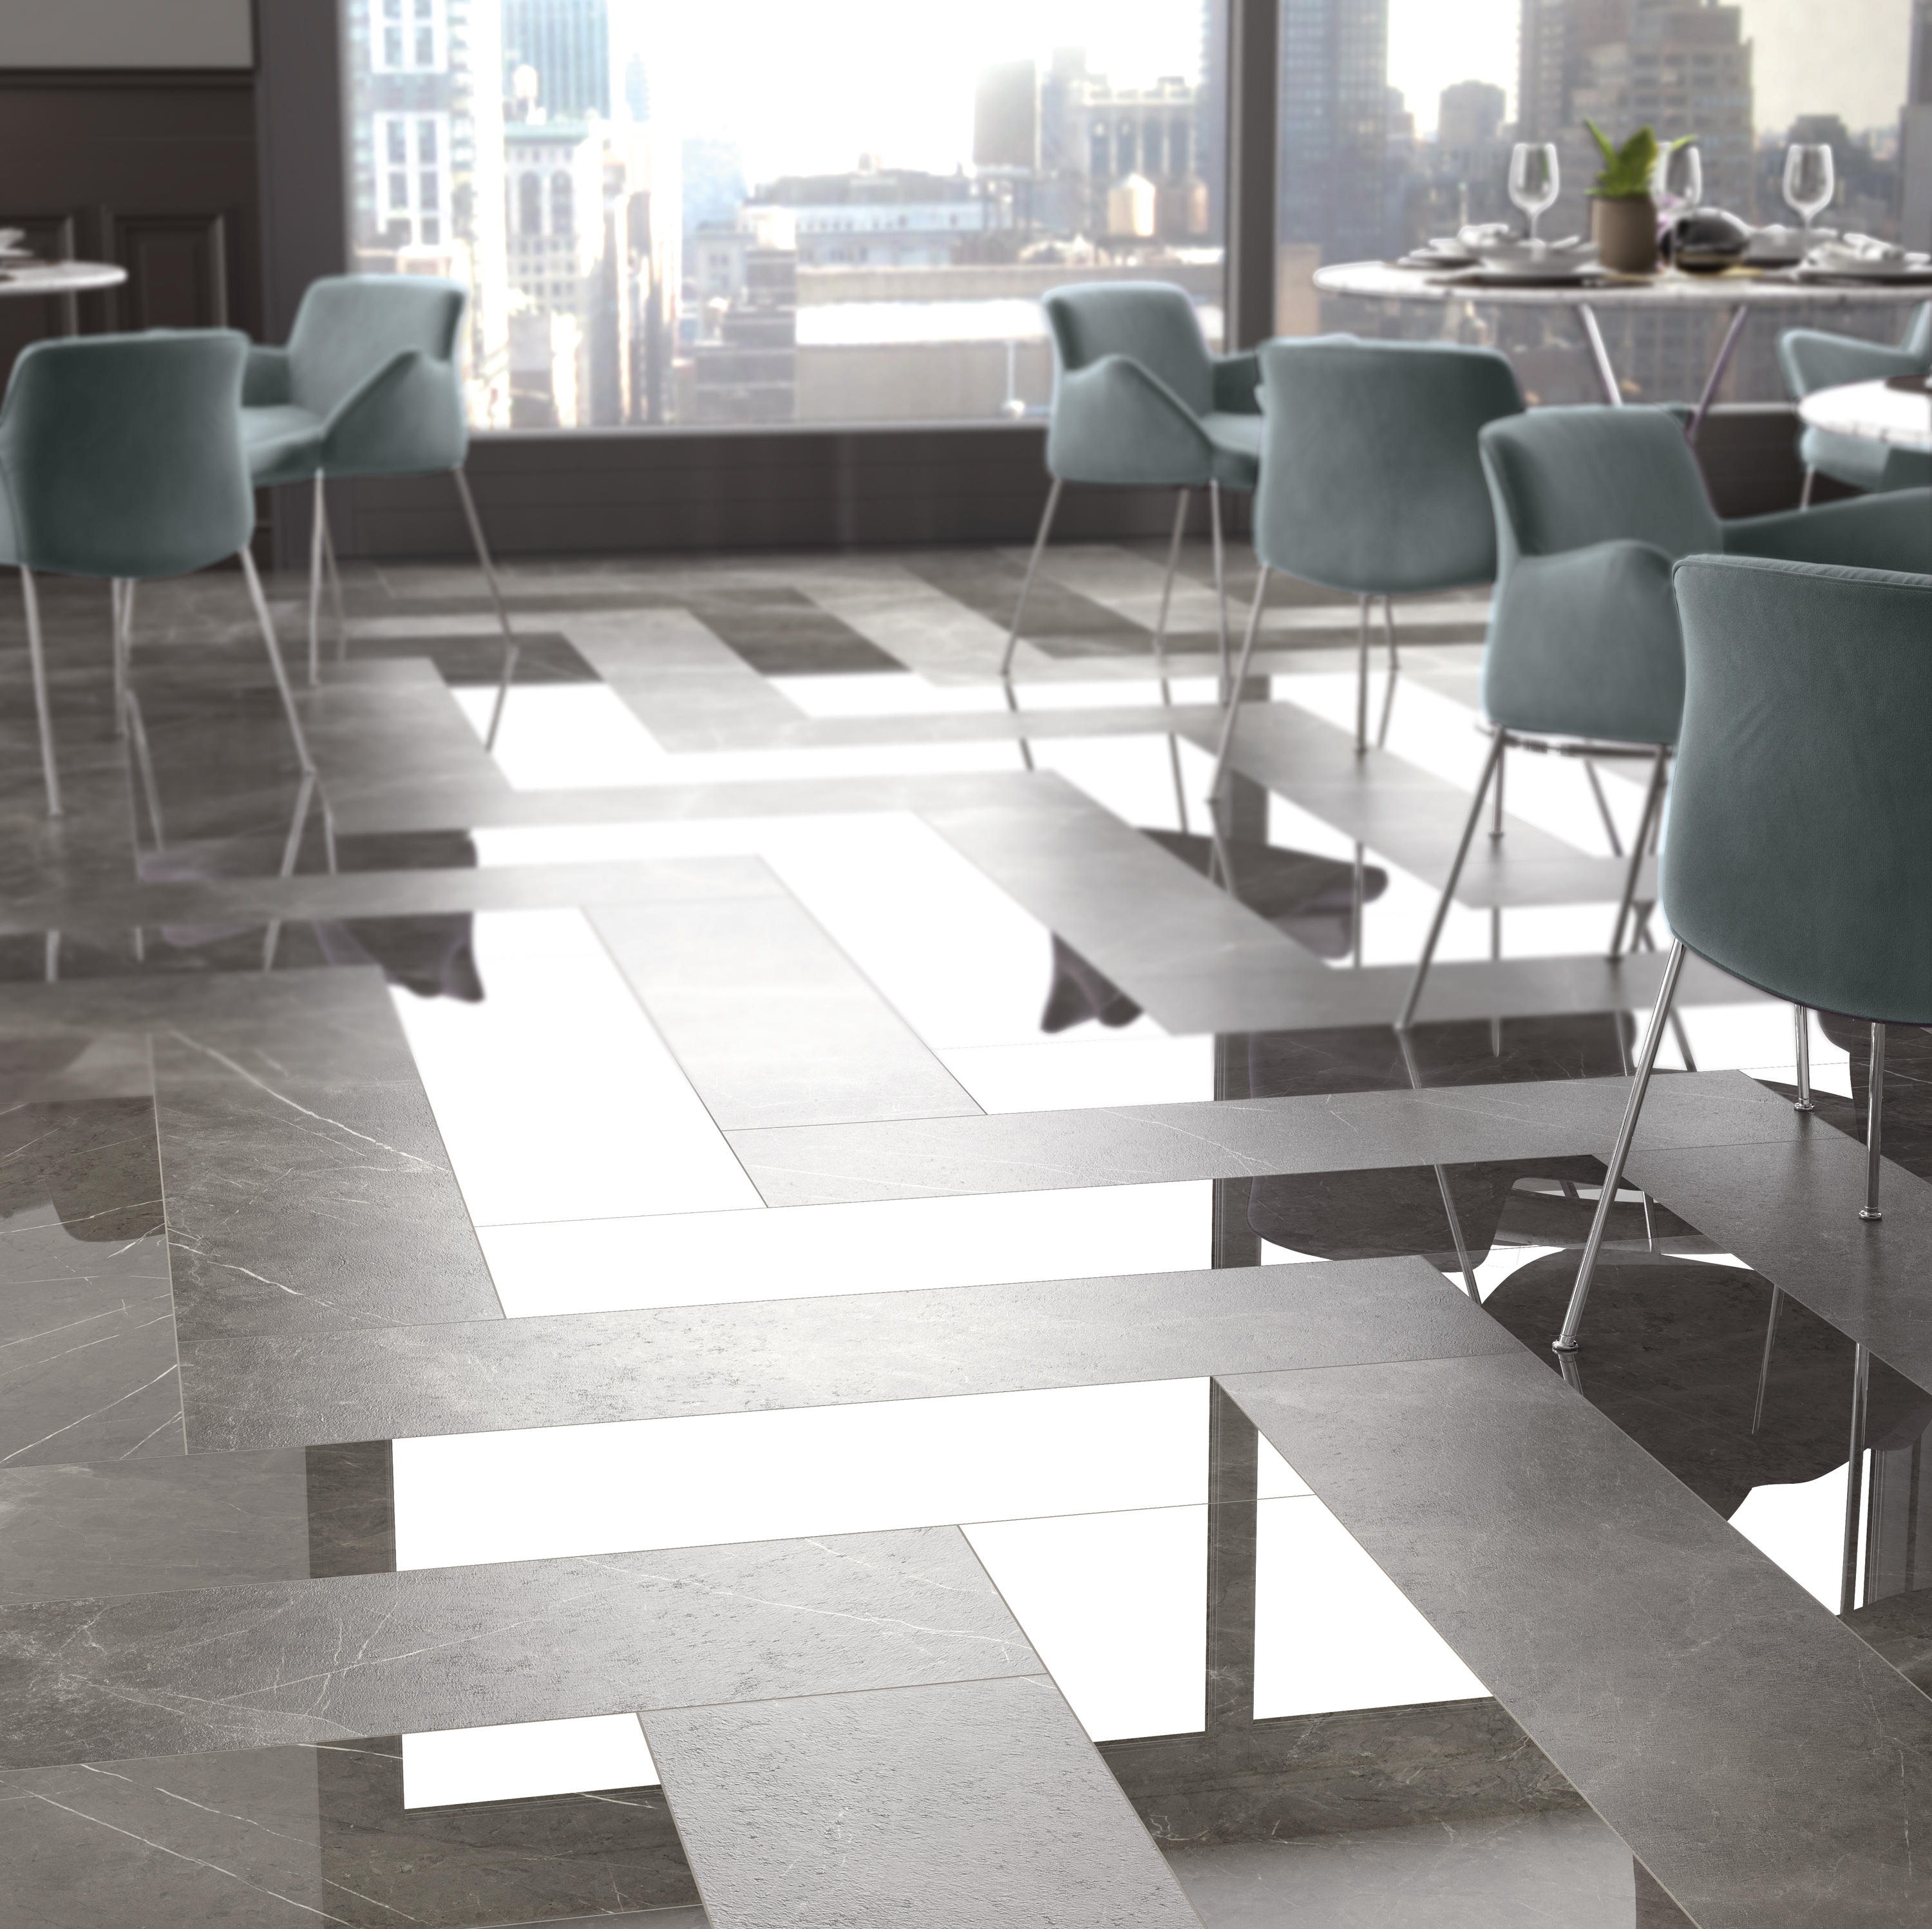 Sensi arabesque silver floor tiles from abk group architonic ambient images doublecrazyfo Choice Image